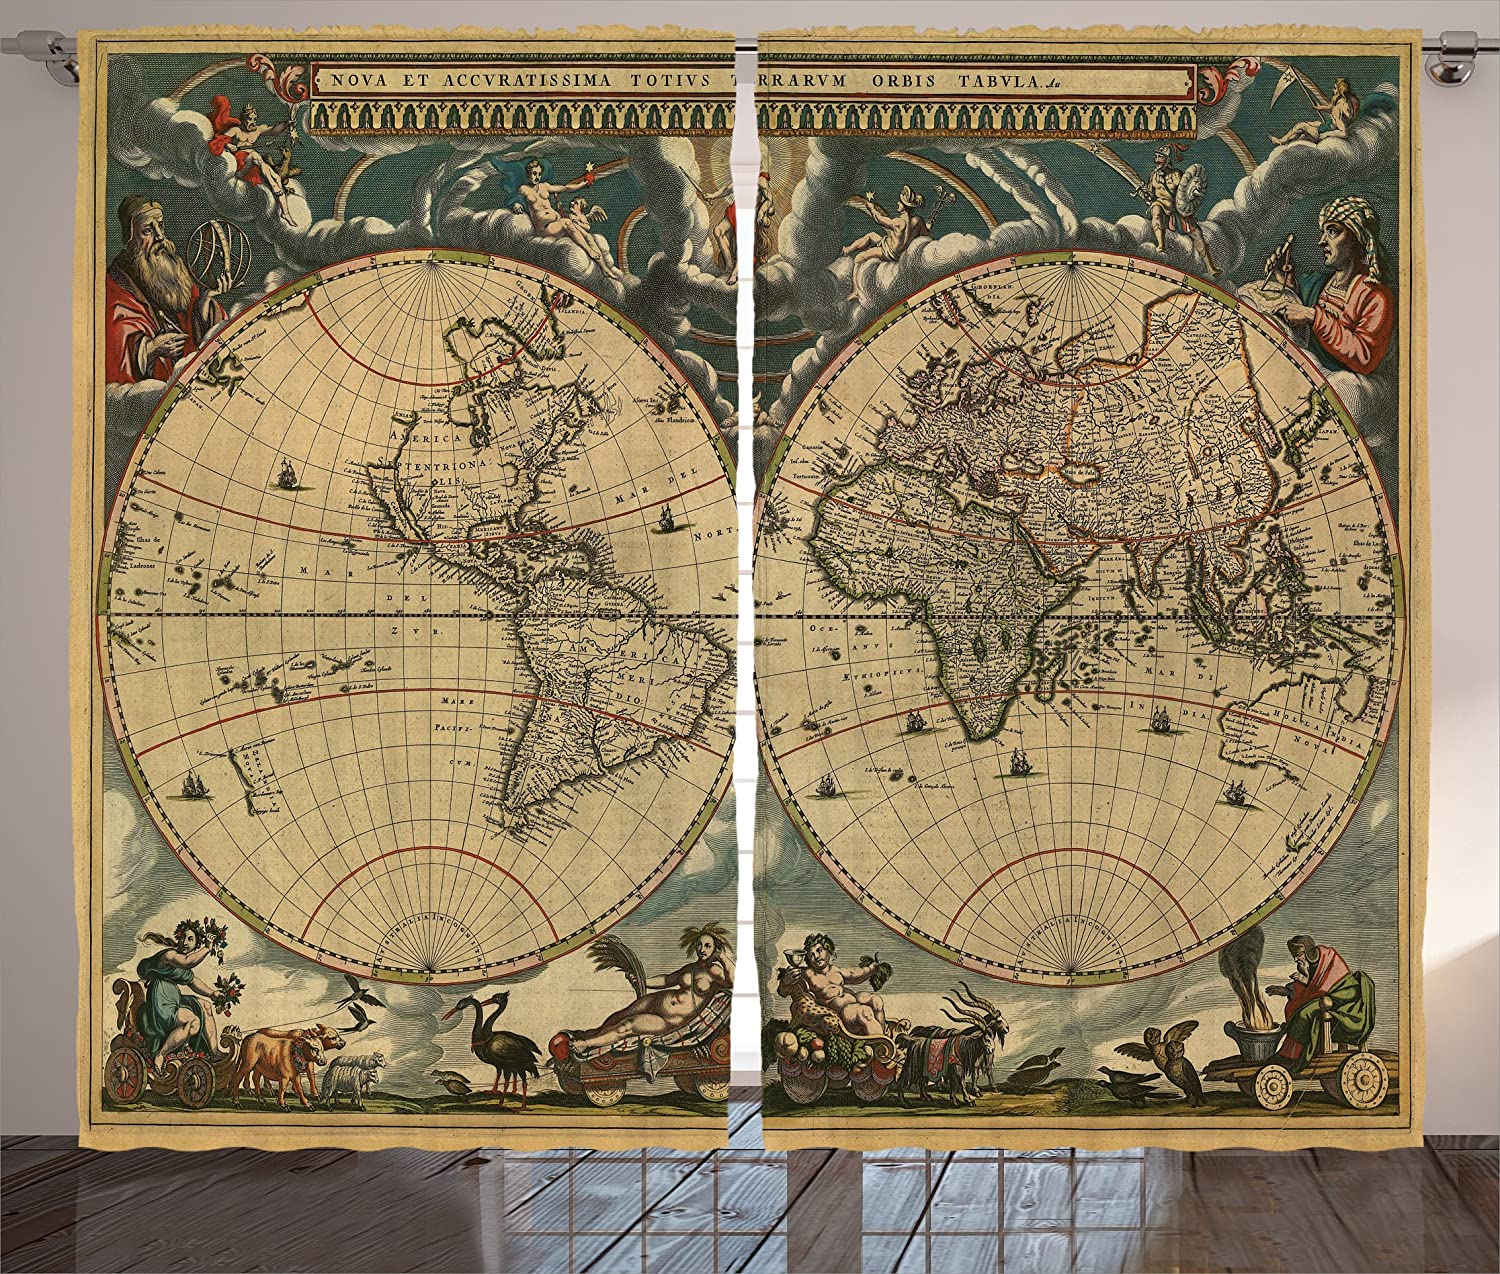 Wanderlust Decor Curtains by Ambesonne, Map of Ancient World Continents Antiquity Stained Vintage Historic Aged Earth Image, 2 Panels Set for Living Room Bedroom, 108 X 84 Inch, Dark Green and Beige